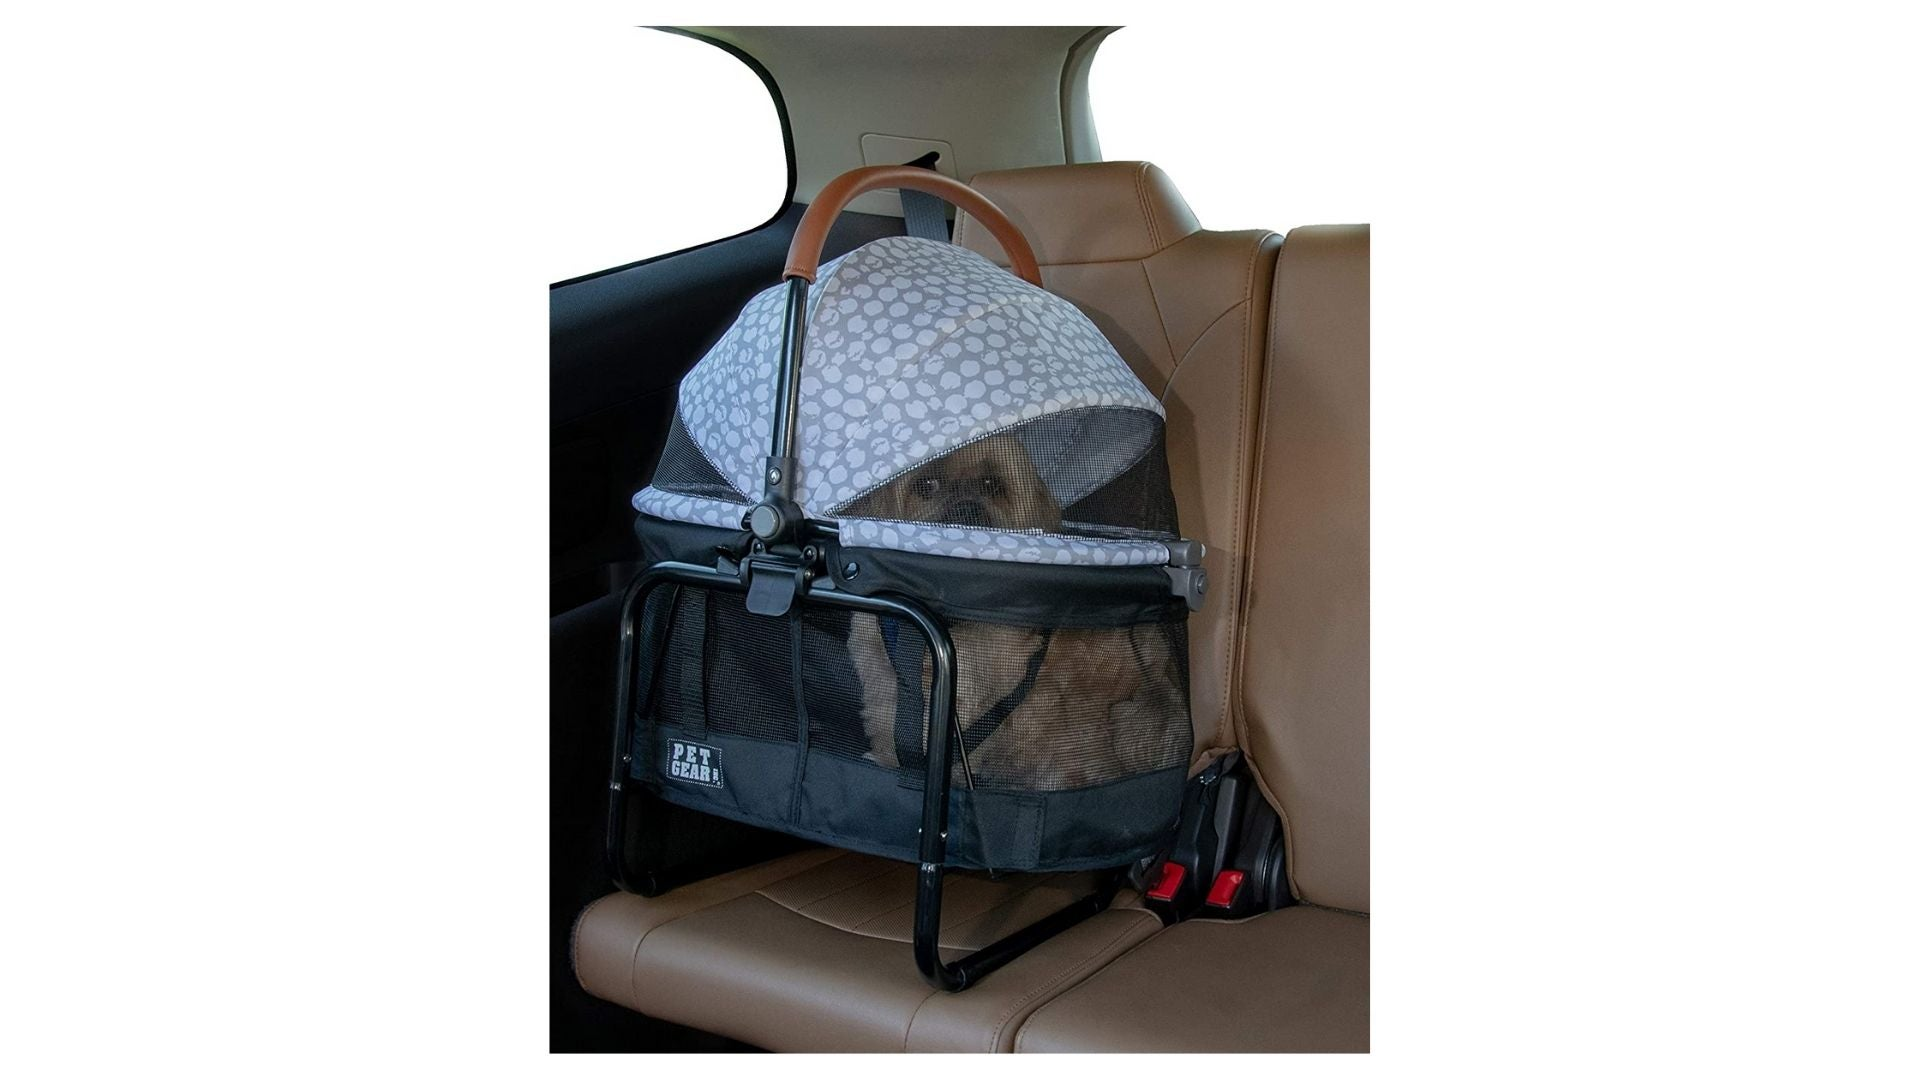 Pet Gear View 360 Pet Carrier & Car Seat with Booster Seat Frame